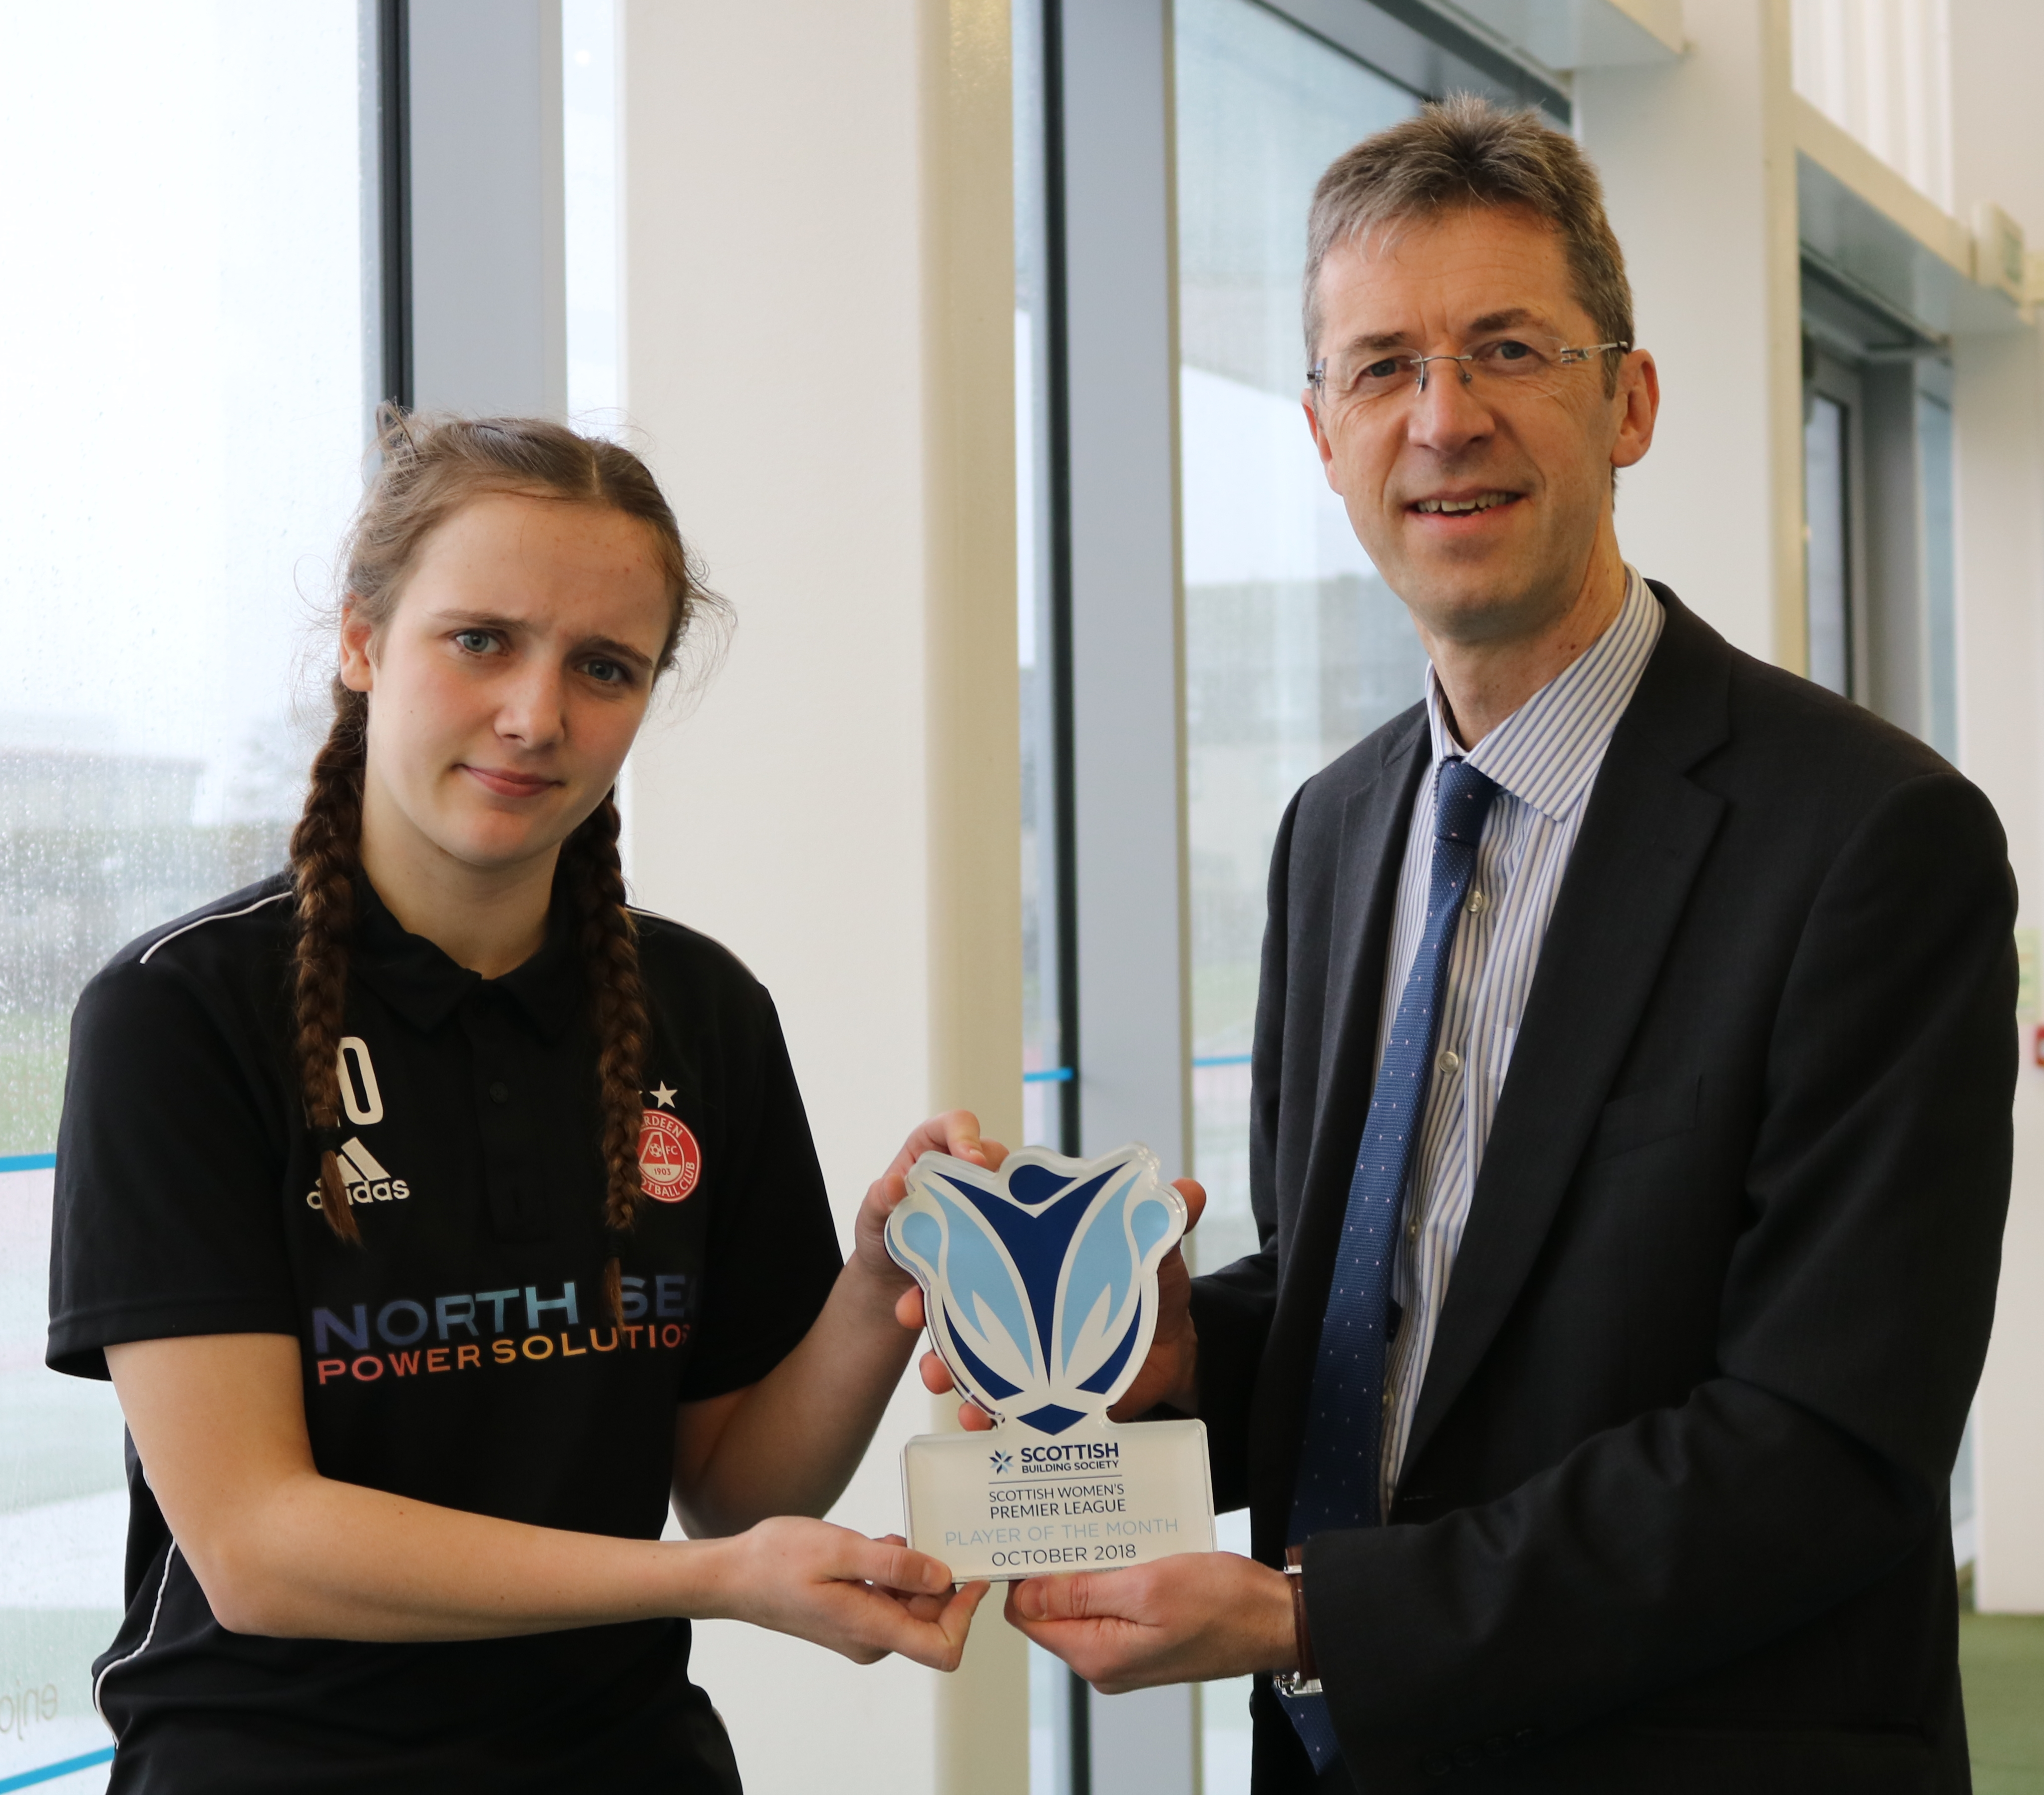 Bayley Hutchison, left, receiving her player of the month award